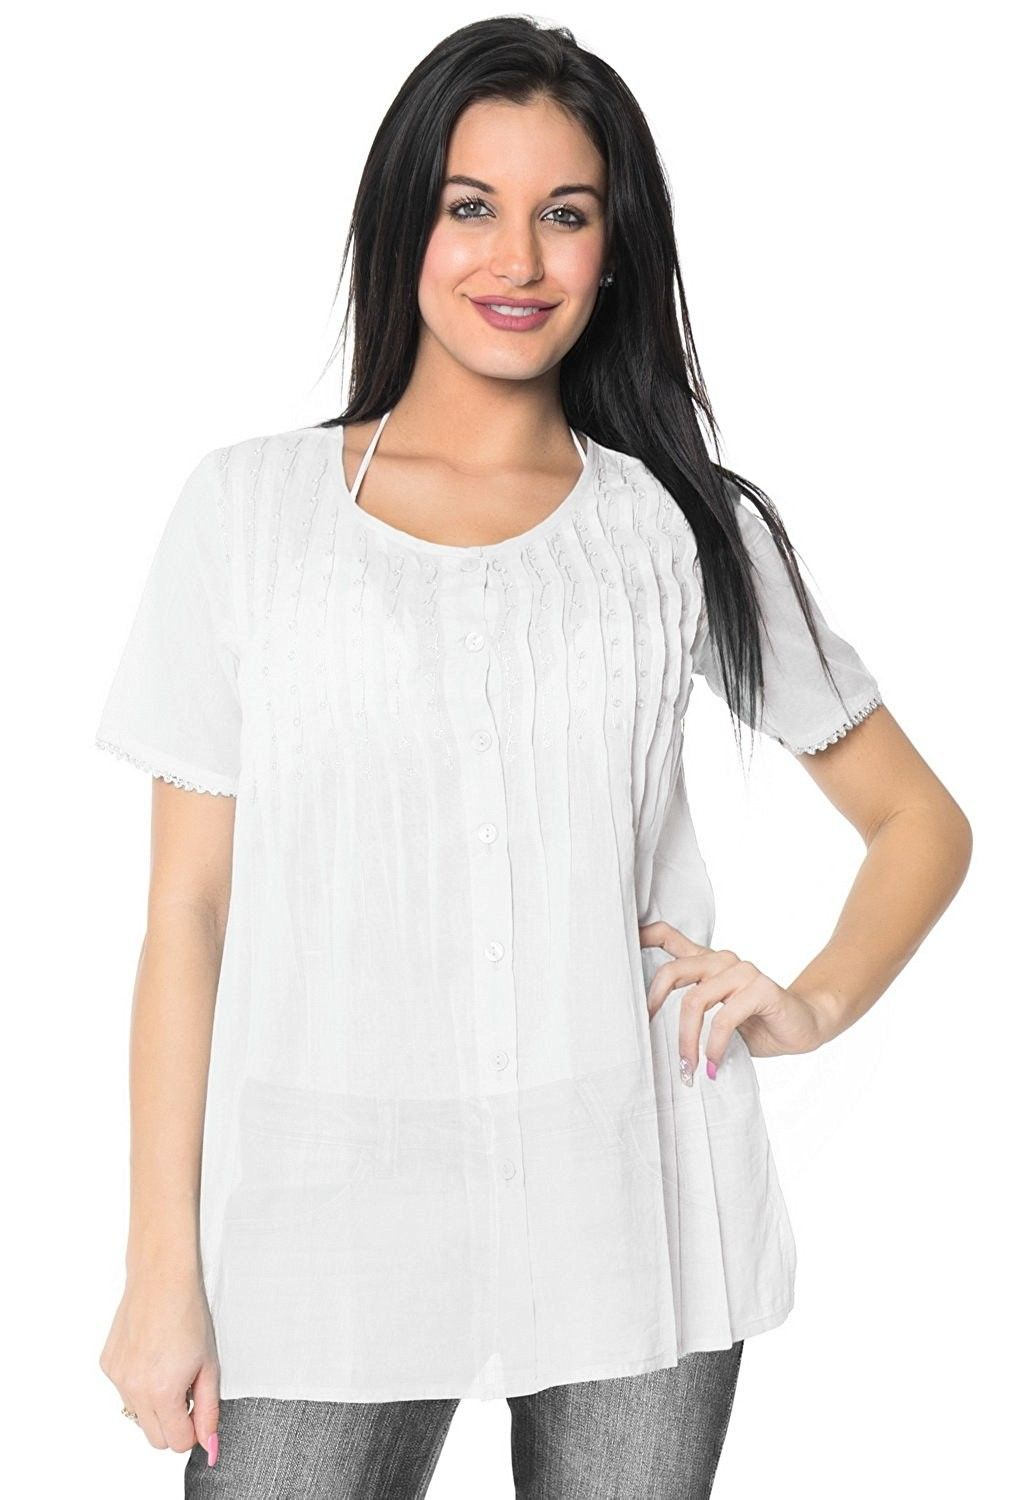 04183d84f3181 Round Neck Button Down Shirt Soft Cotton Cover up/Tunic/Top Casual/Wear to  Work - Snow White - CD12BXNIGJL,Women's Clothing, Swimsuits & Cover Ups, ...